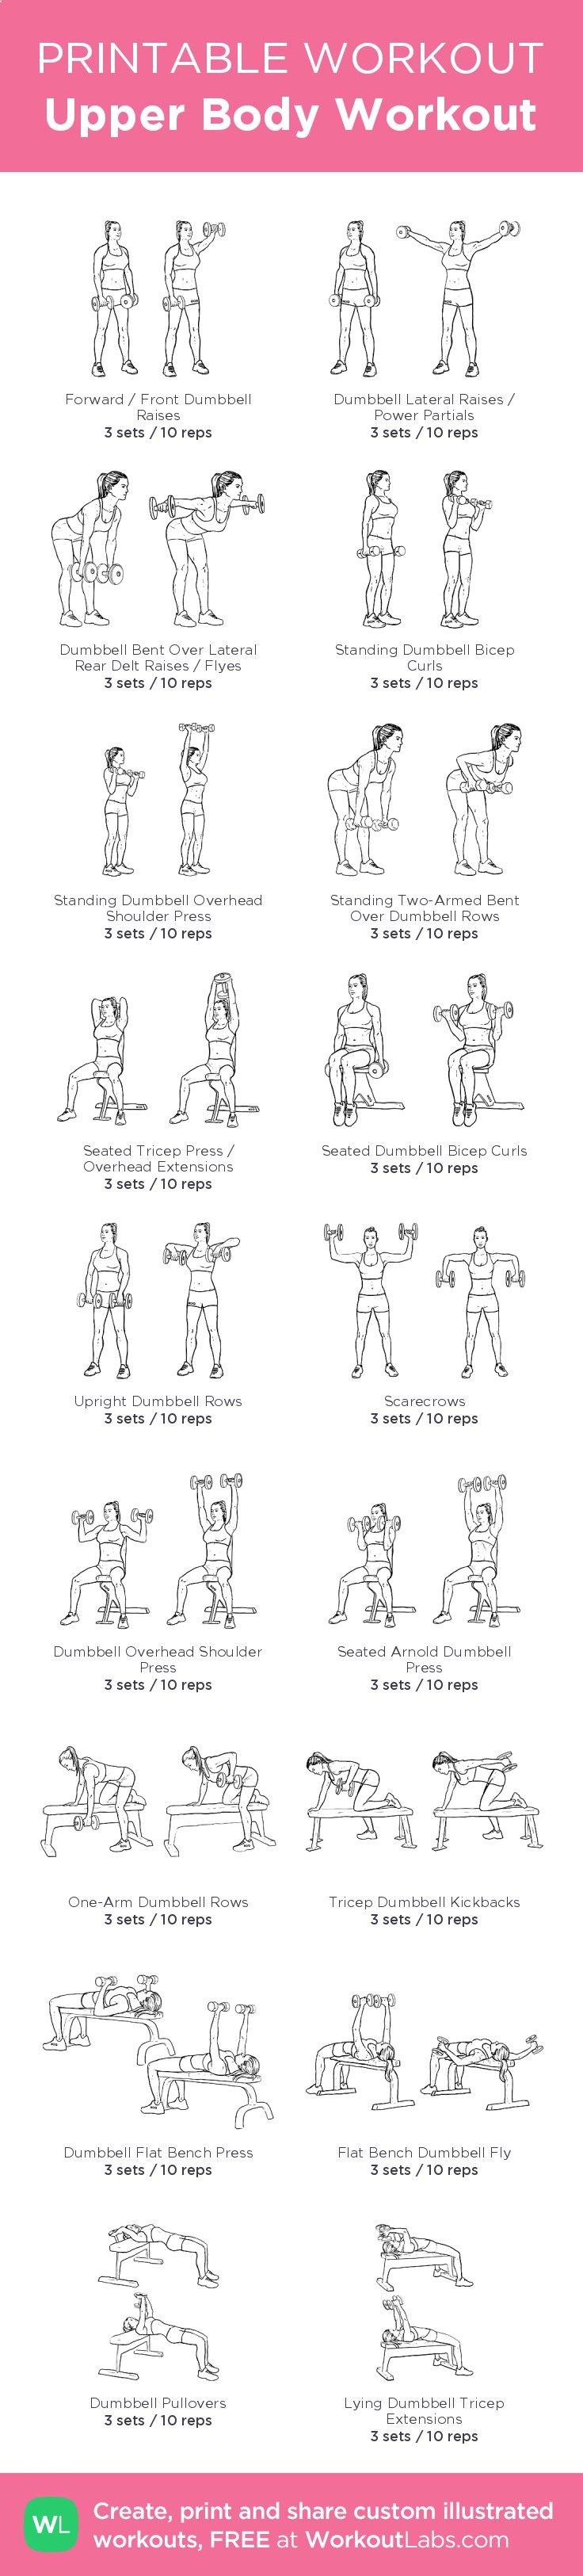 Upper Body Workout – illustrated exercise plan created at WorkoutLabs.com • Click for a printable PDF and to build your own #customworkout